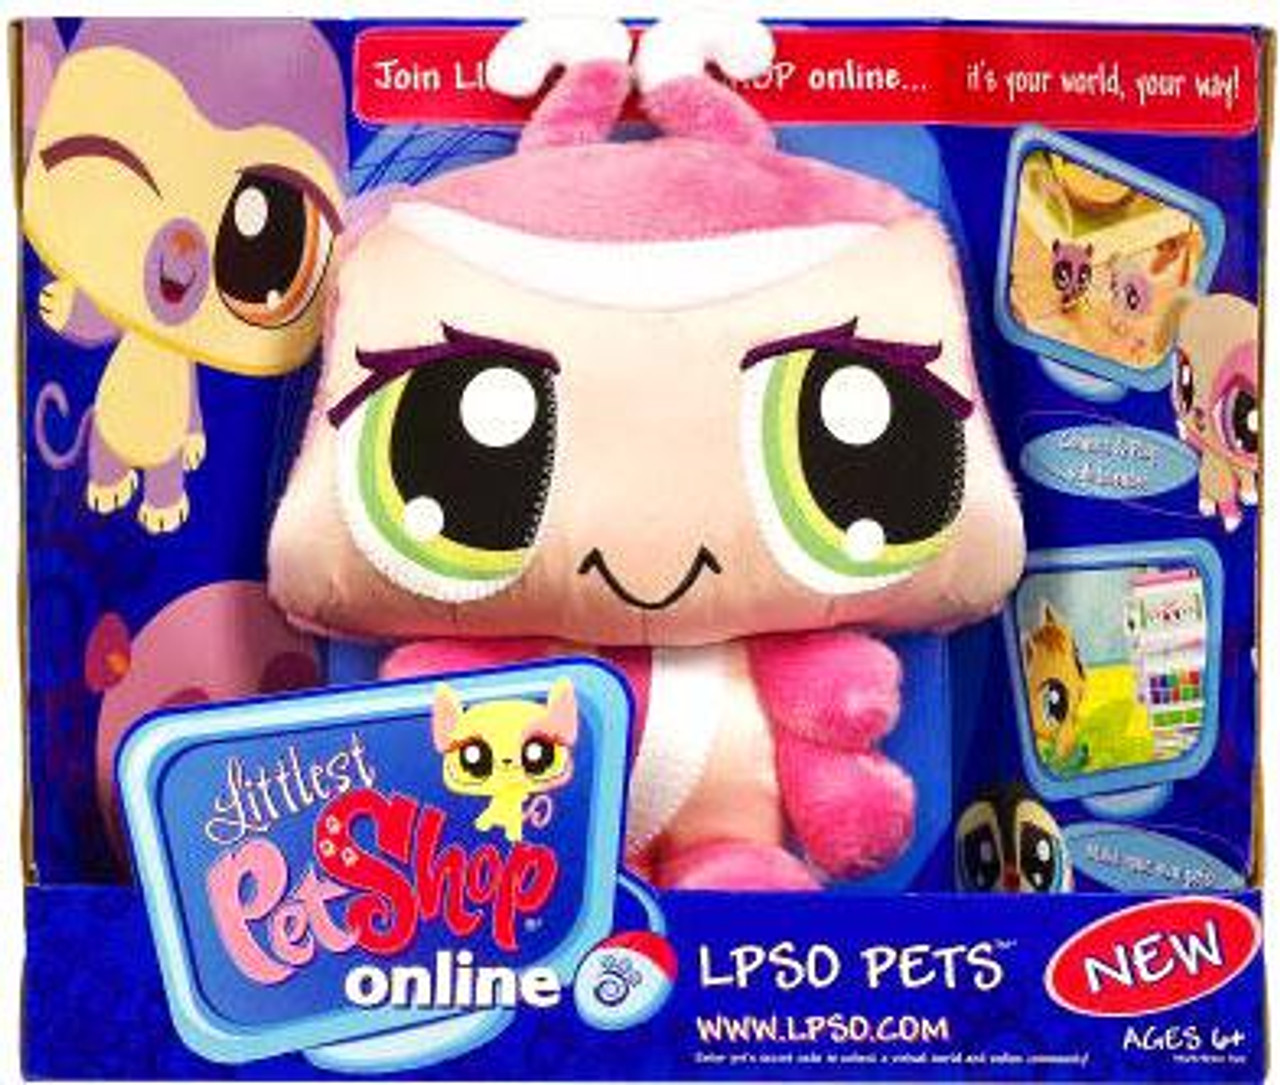 Littlest Pet Shop Online LPSO Pets Ladybug Plush